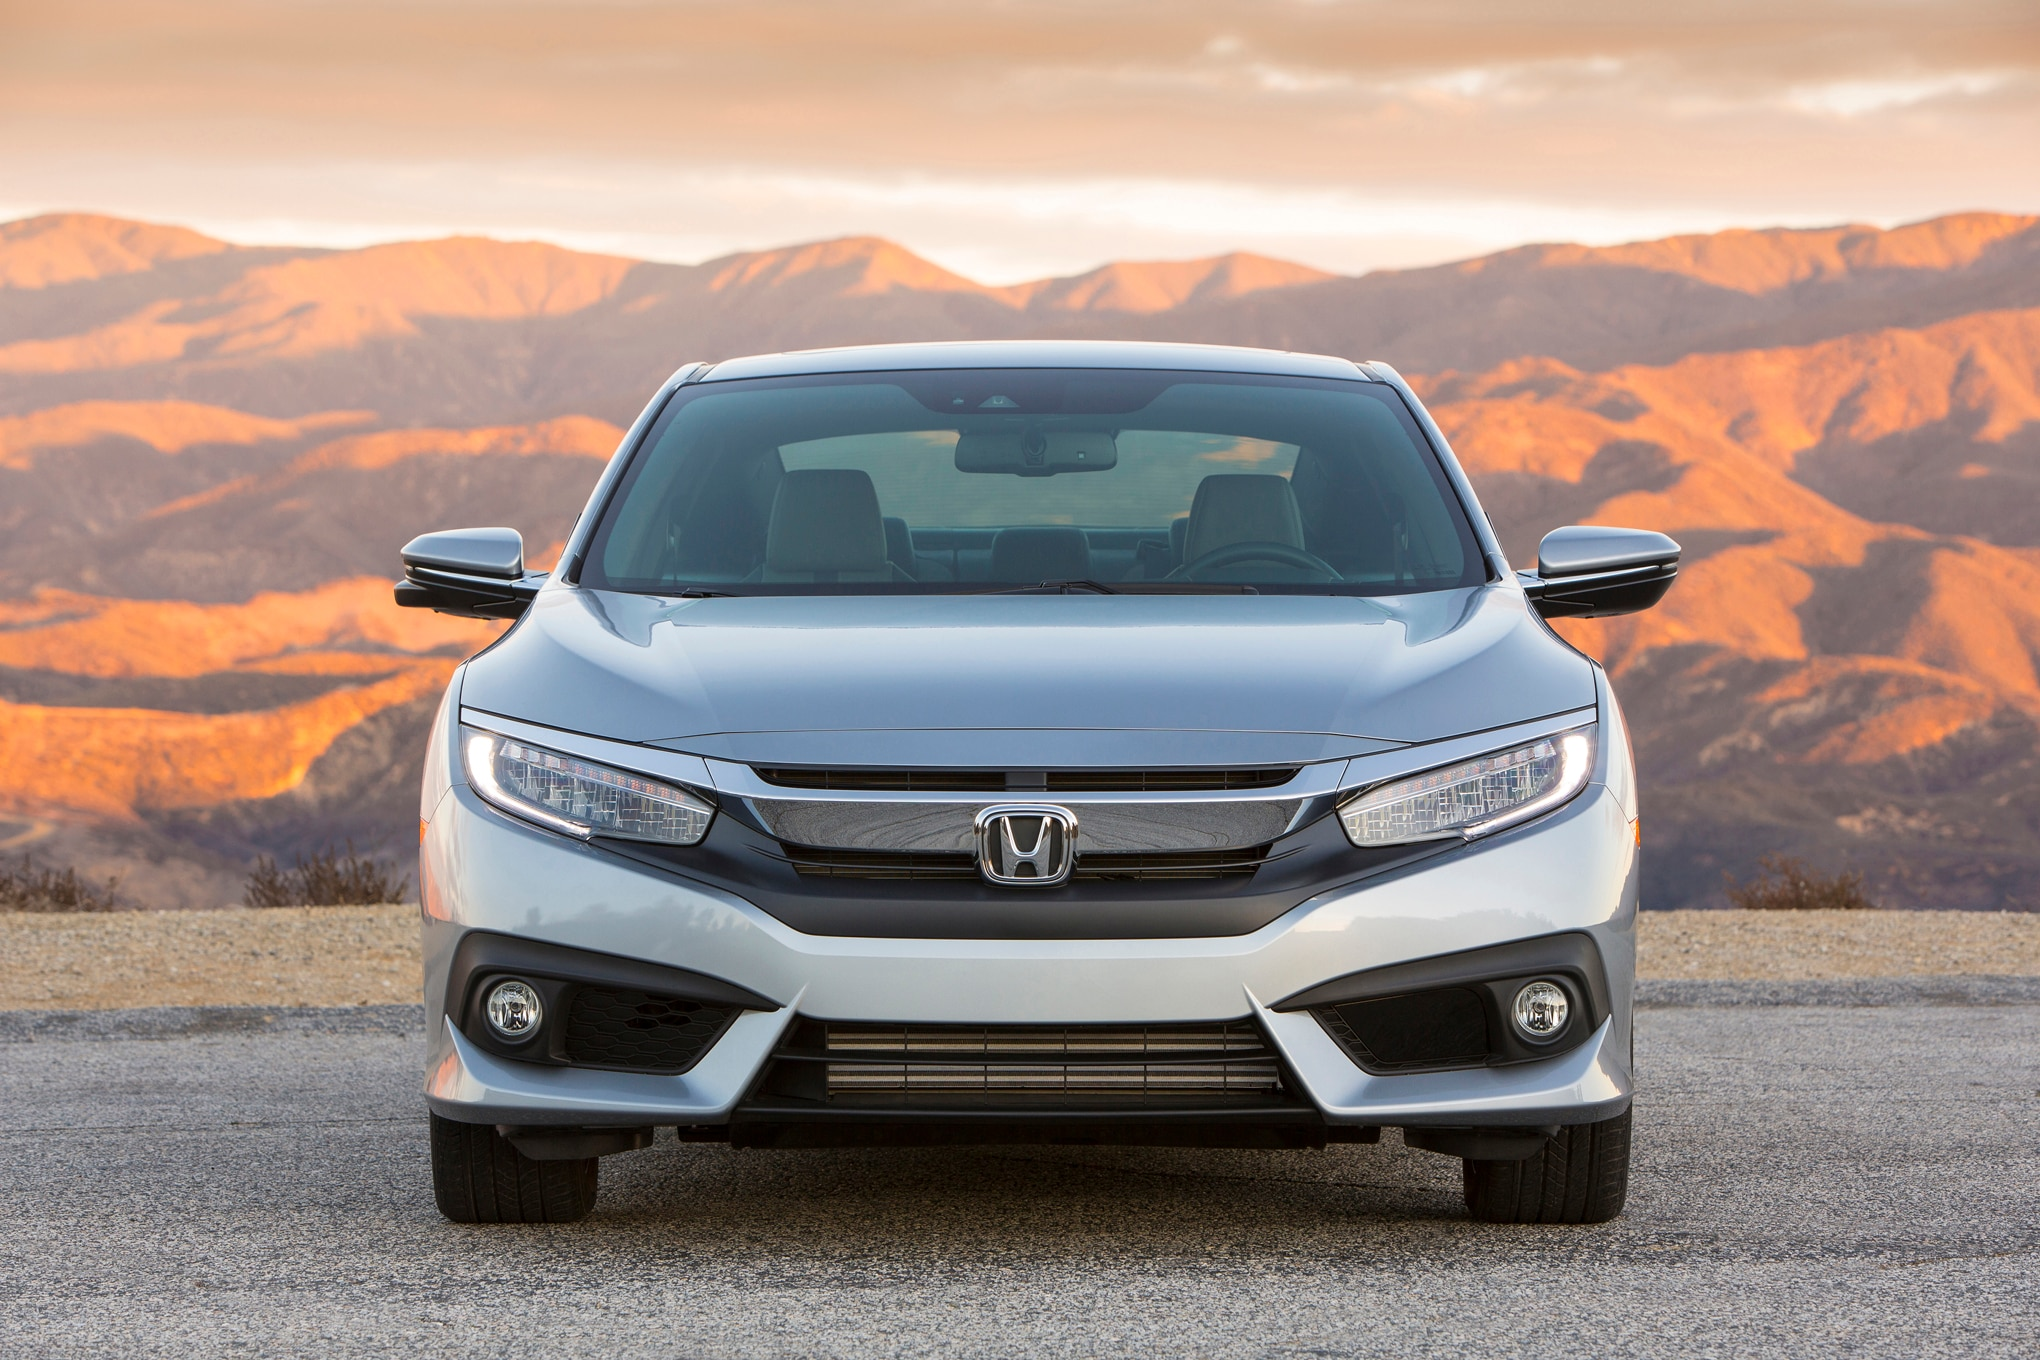 2016 Honda Civic Coupe Touring One Week Review ...